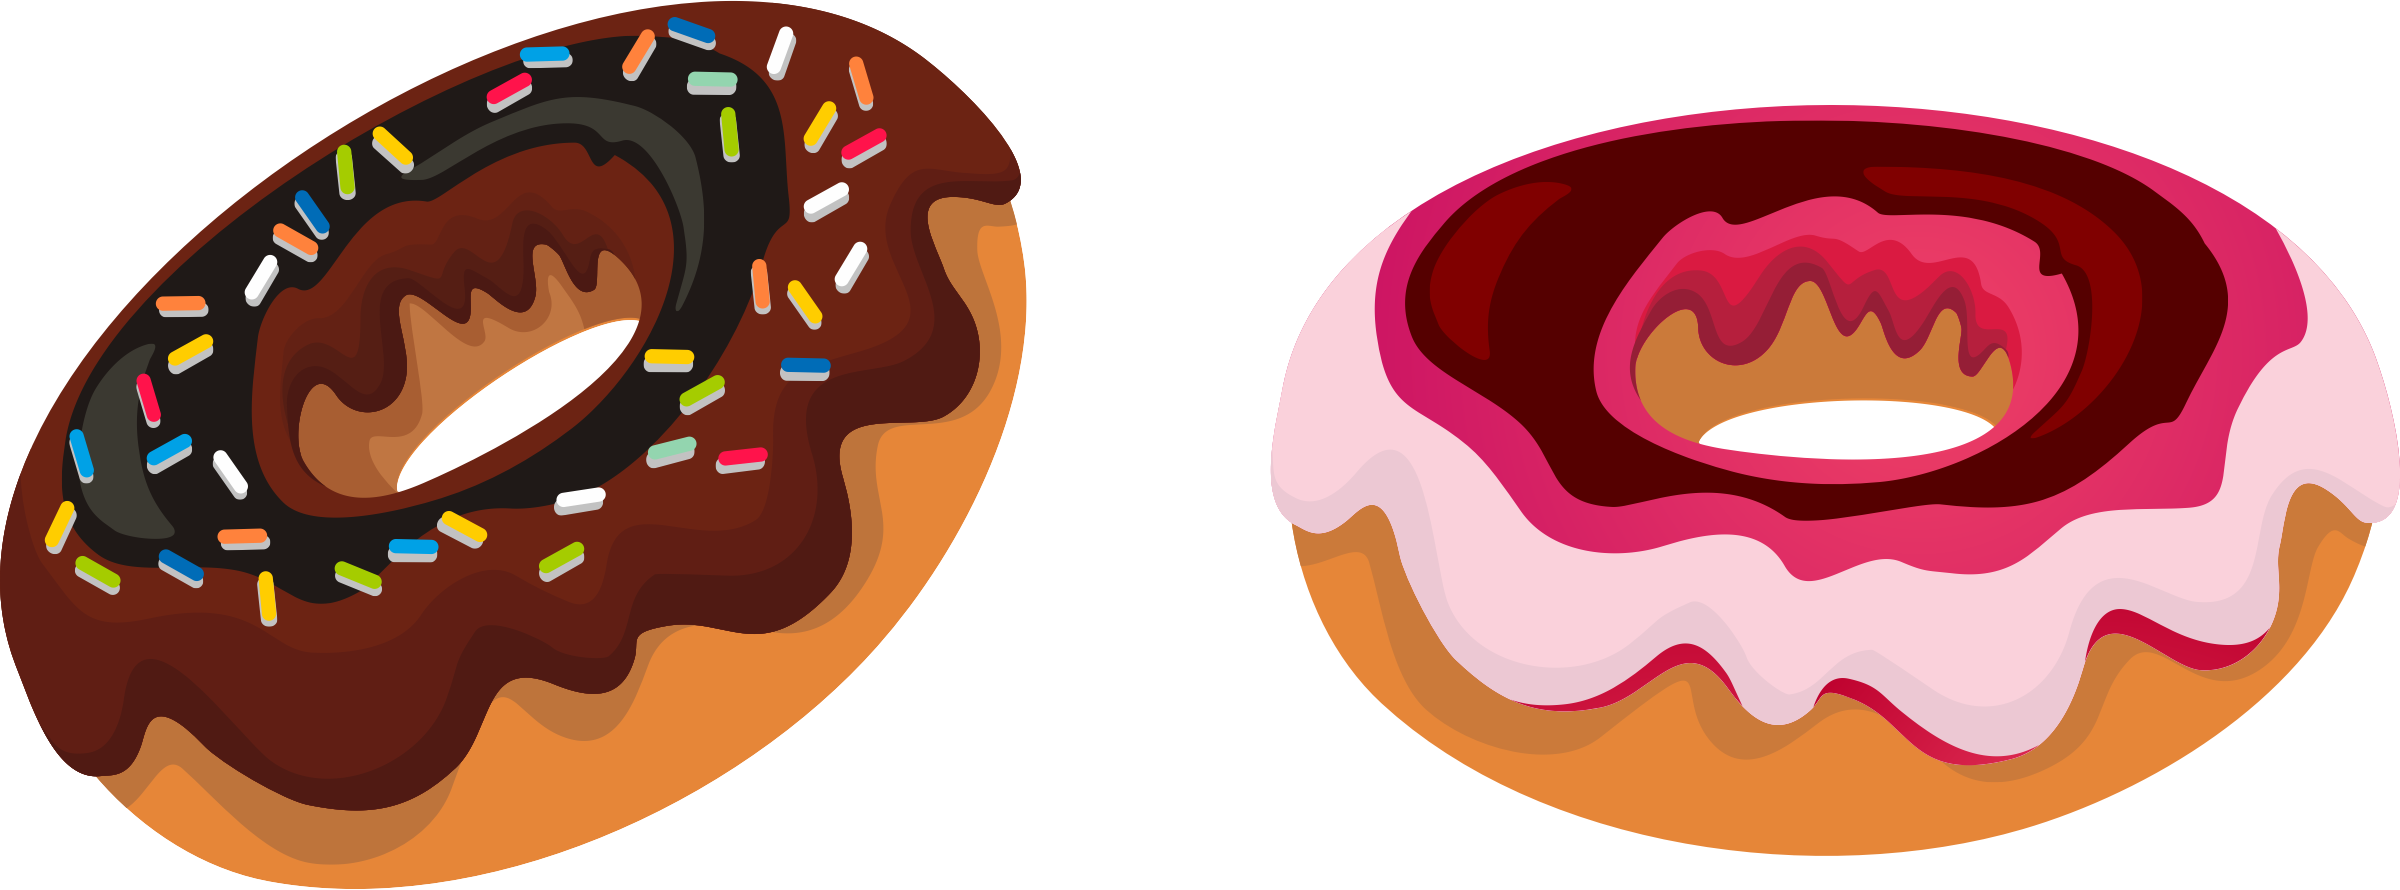 Coffee and donuts clipart free images.